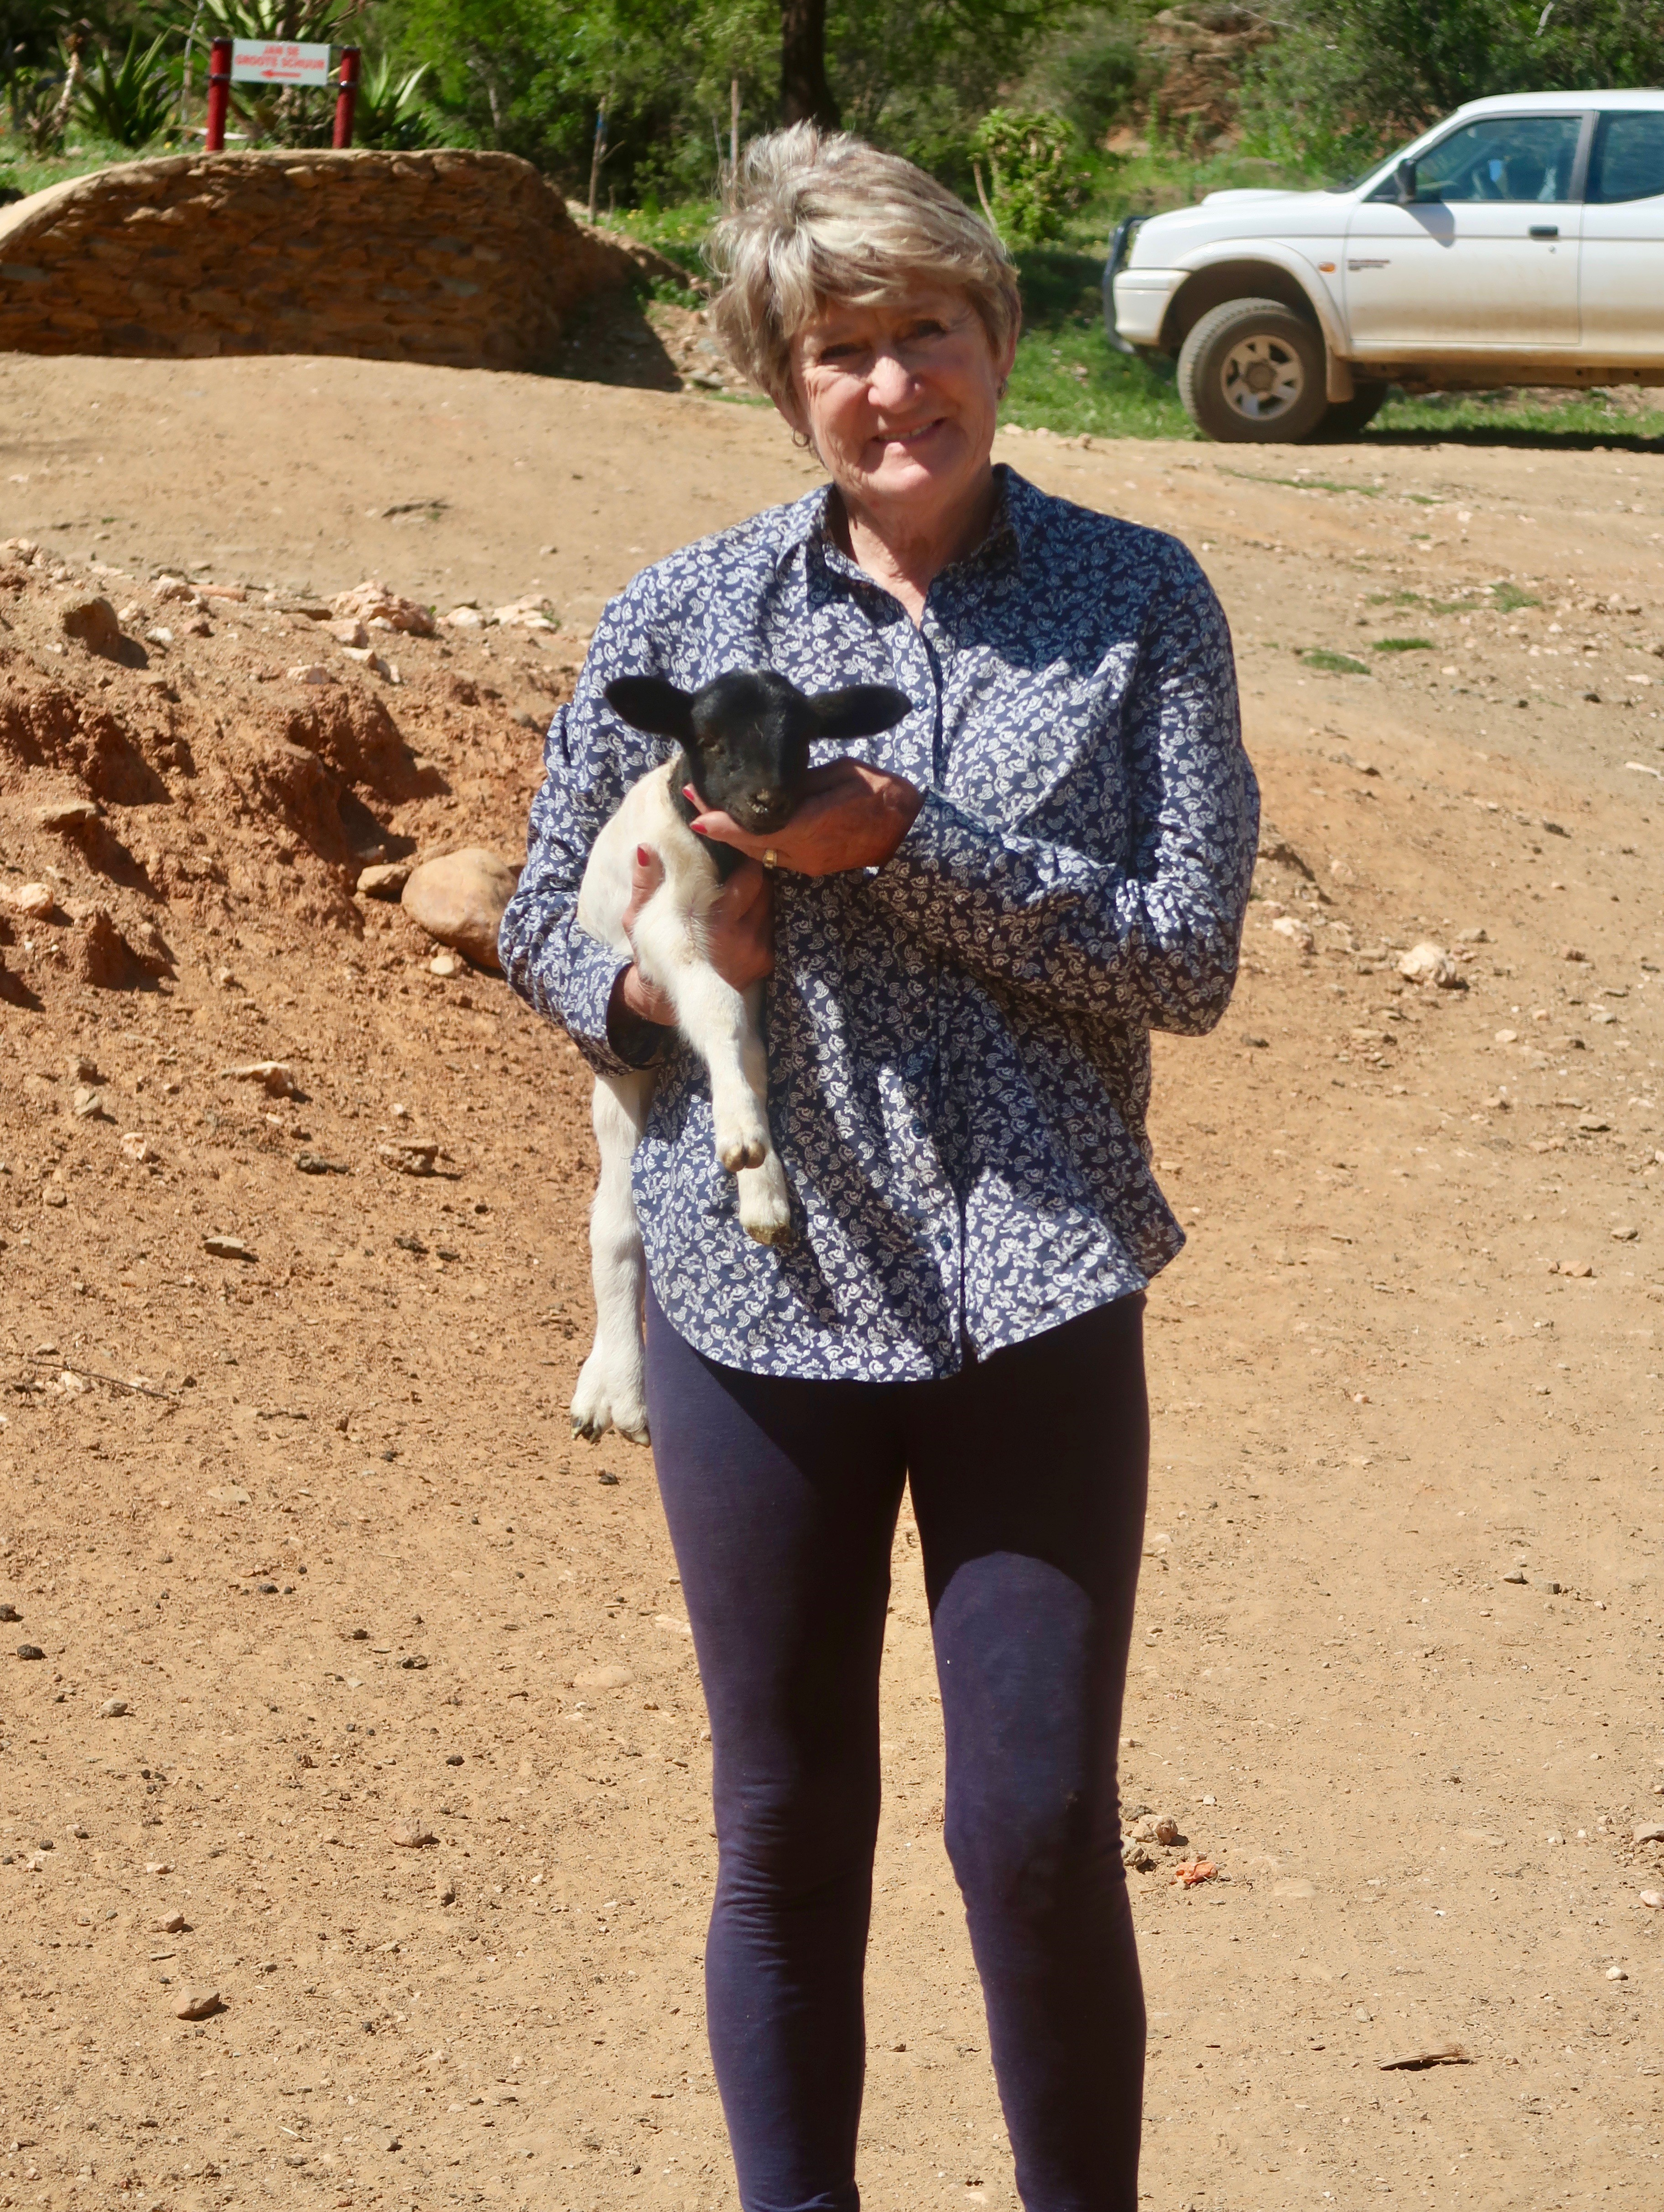 Maggie Fourie holding a lamb on the Oudemagurie farm